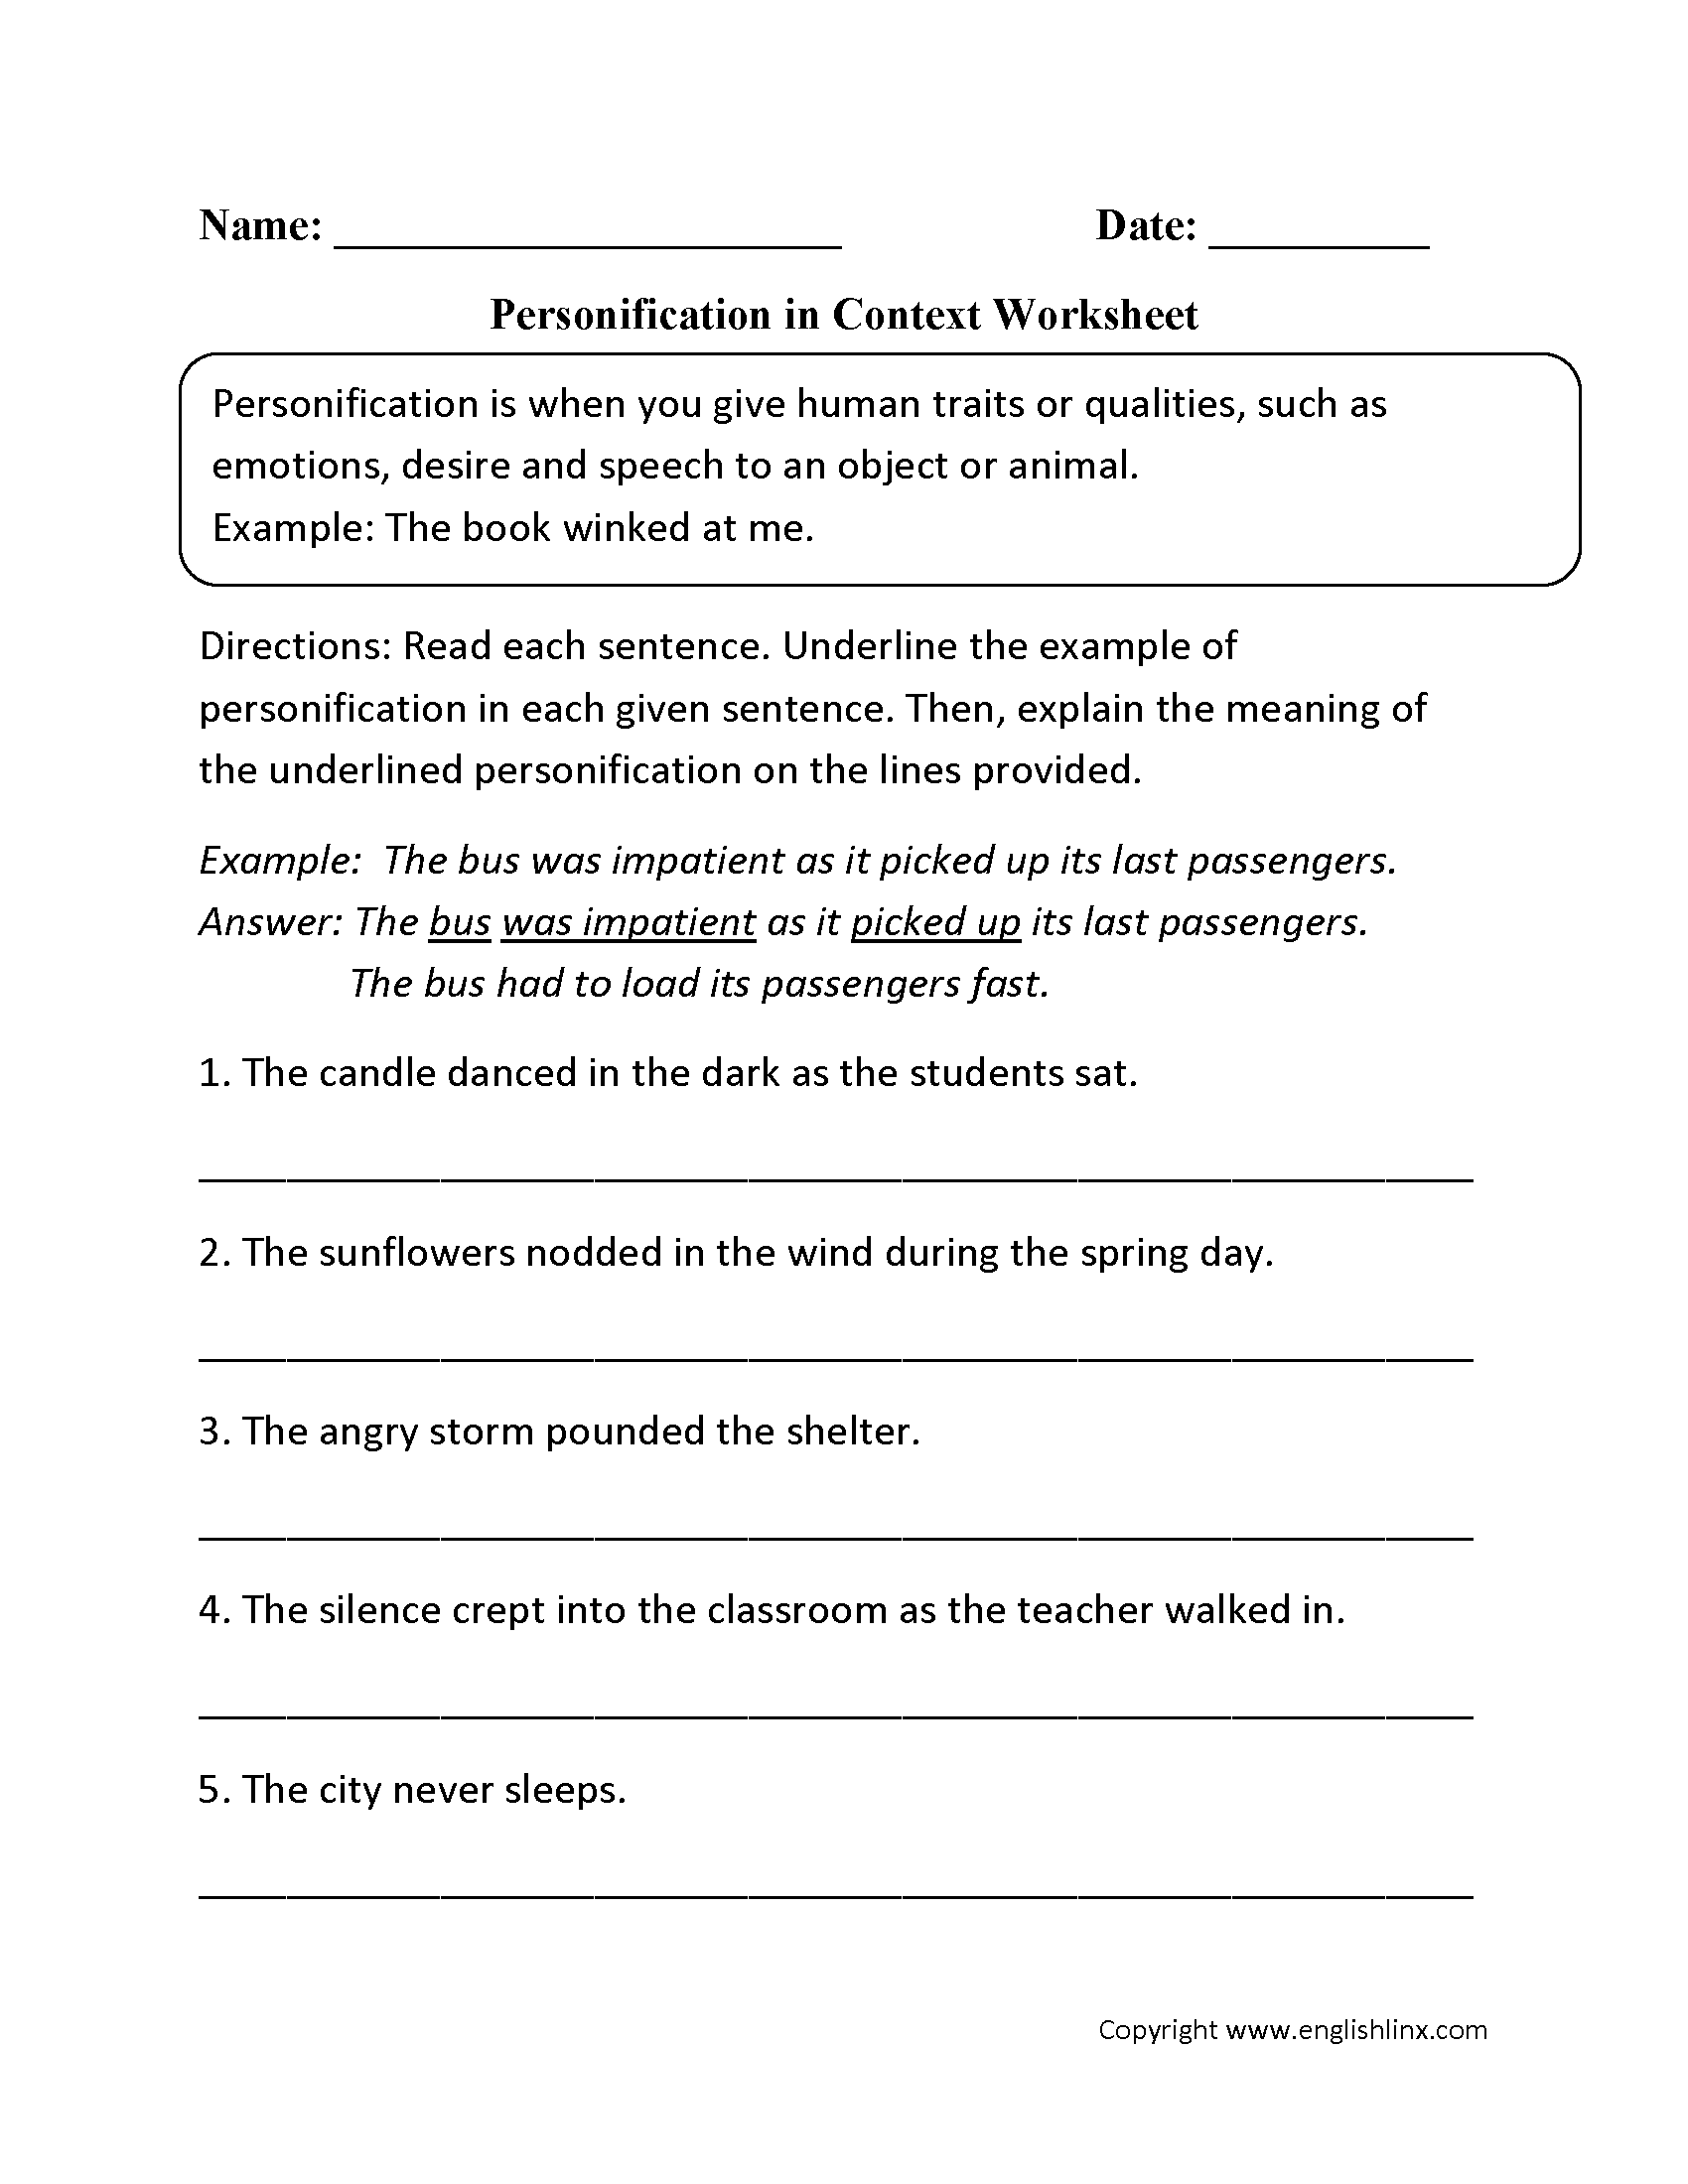 Personification In Context Worksheet